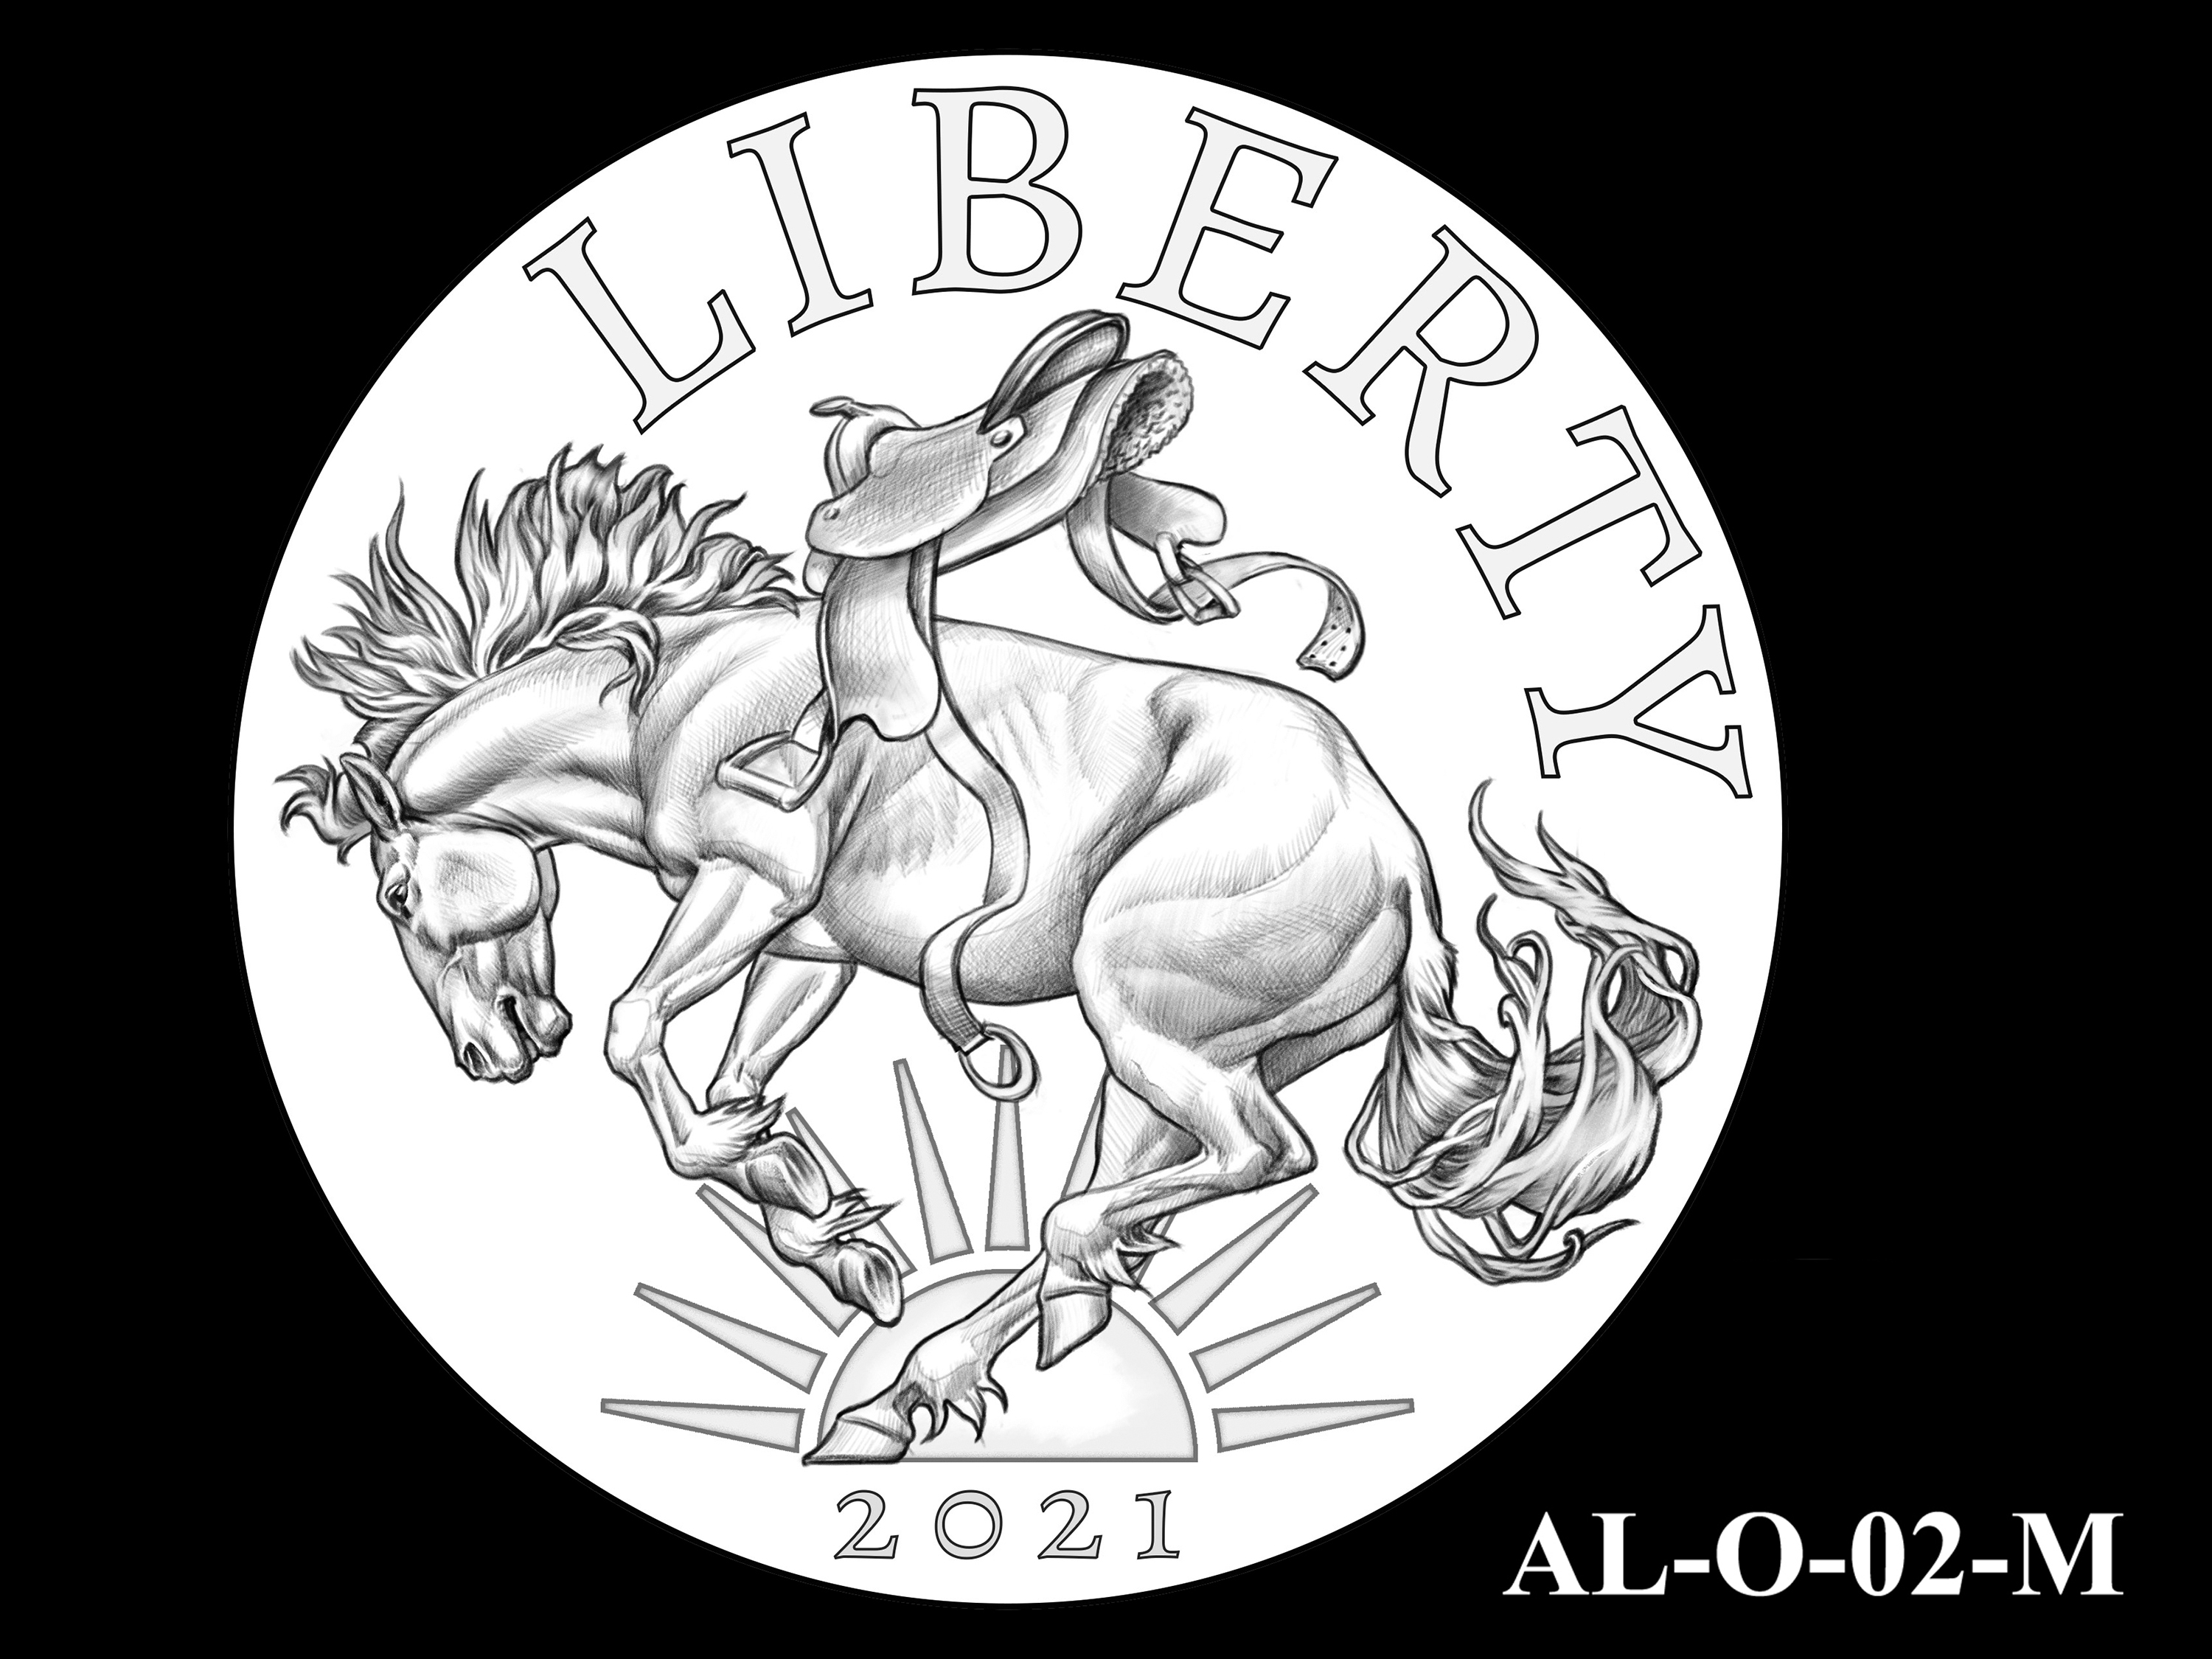 AL-O-02-M -- 2021 American Liberty Gold Coin and Silver Medal Program - Obverse